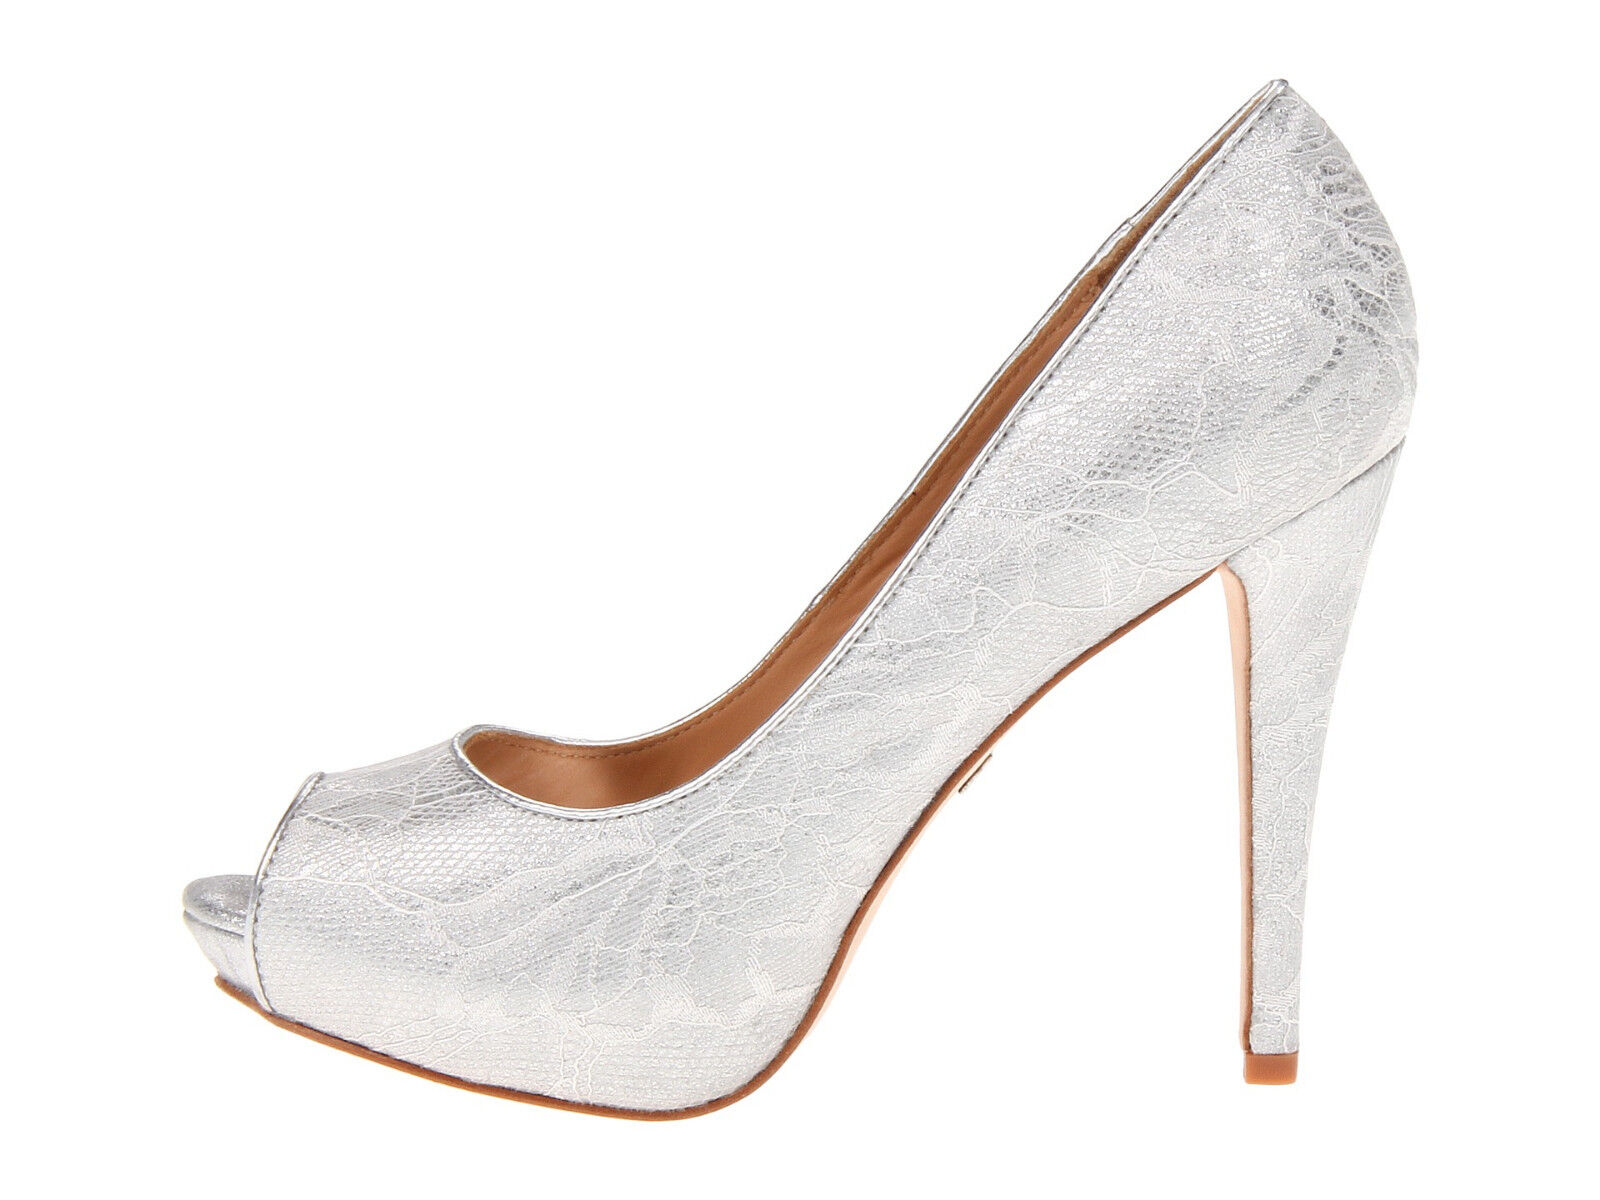 Badgley Badgley Badgley Mischka damen Humbie VI Weiß Silber Peep-Toe Formal Pumps Heels 3d0601